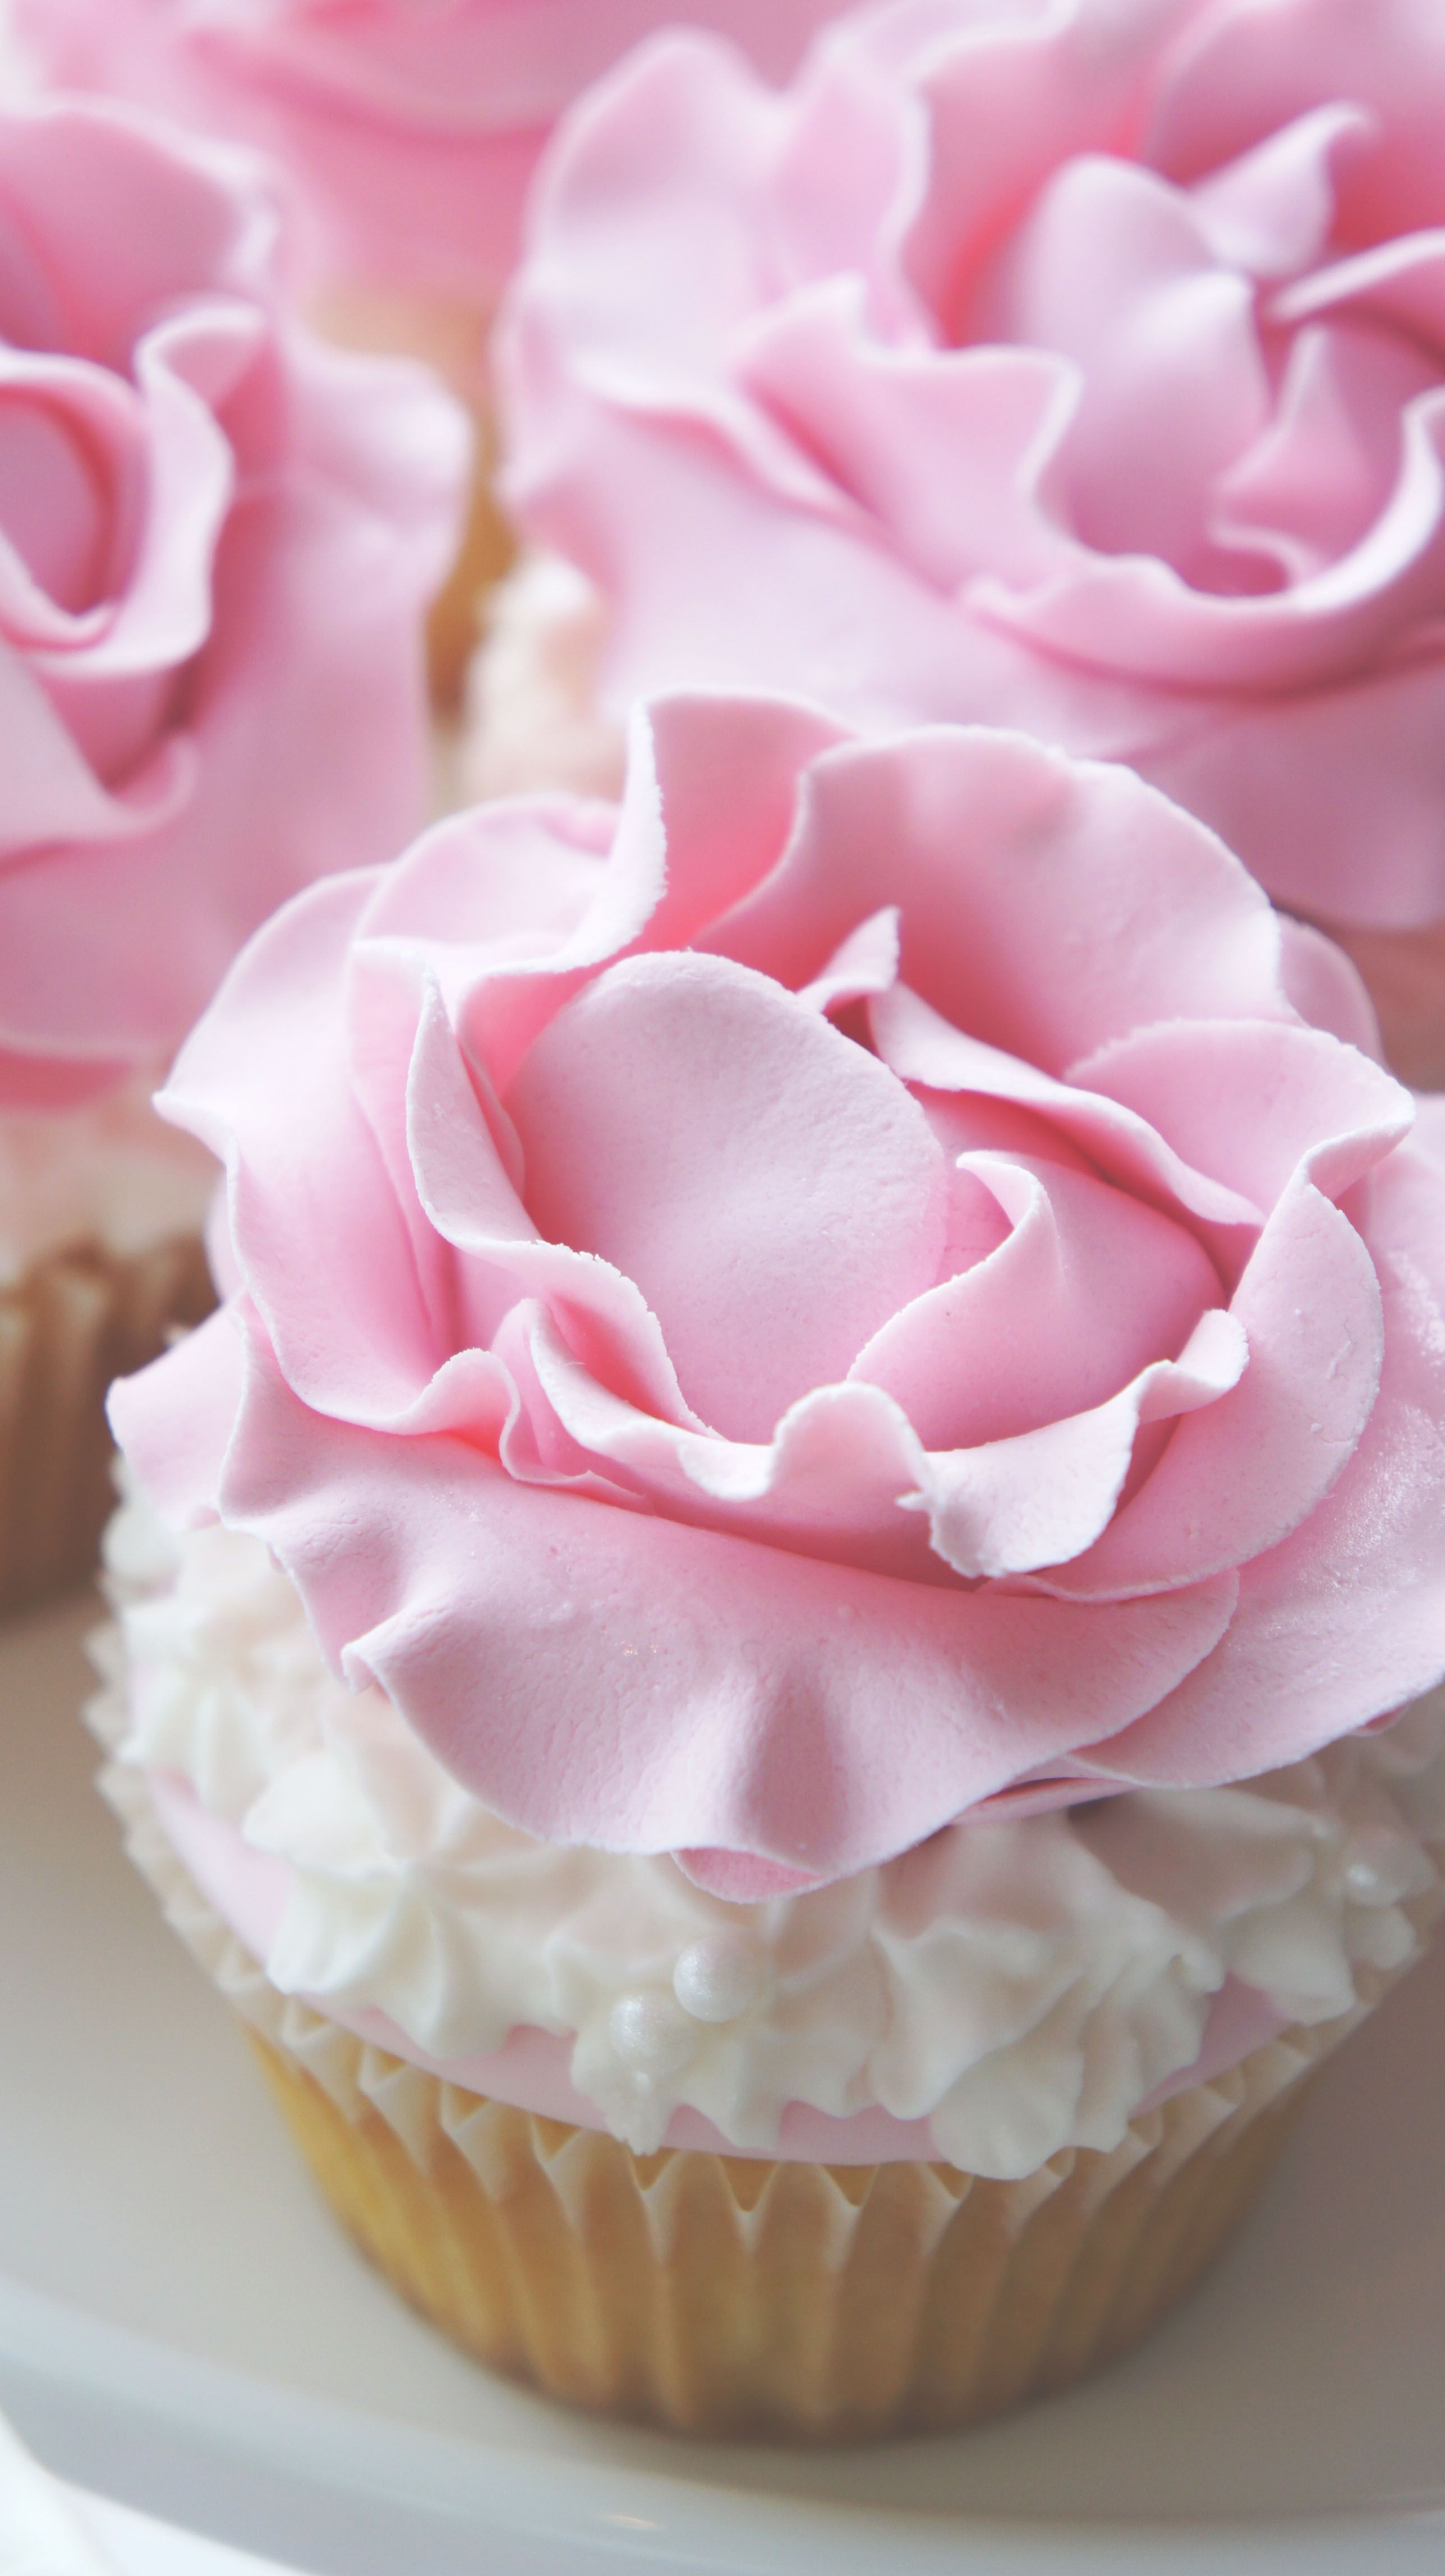 Rose cupcakes by 2 bites - styling by My Little Jedi